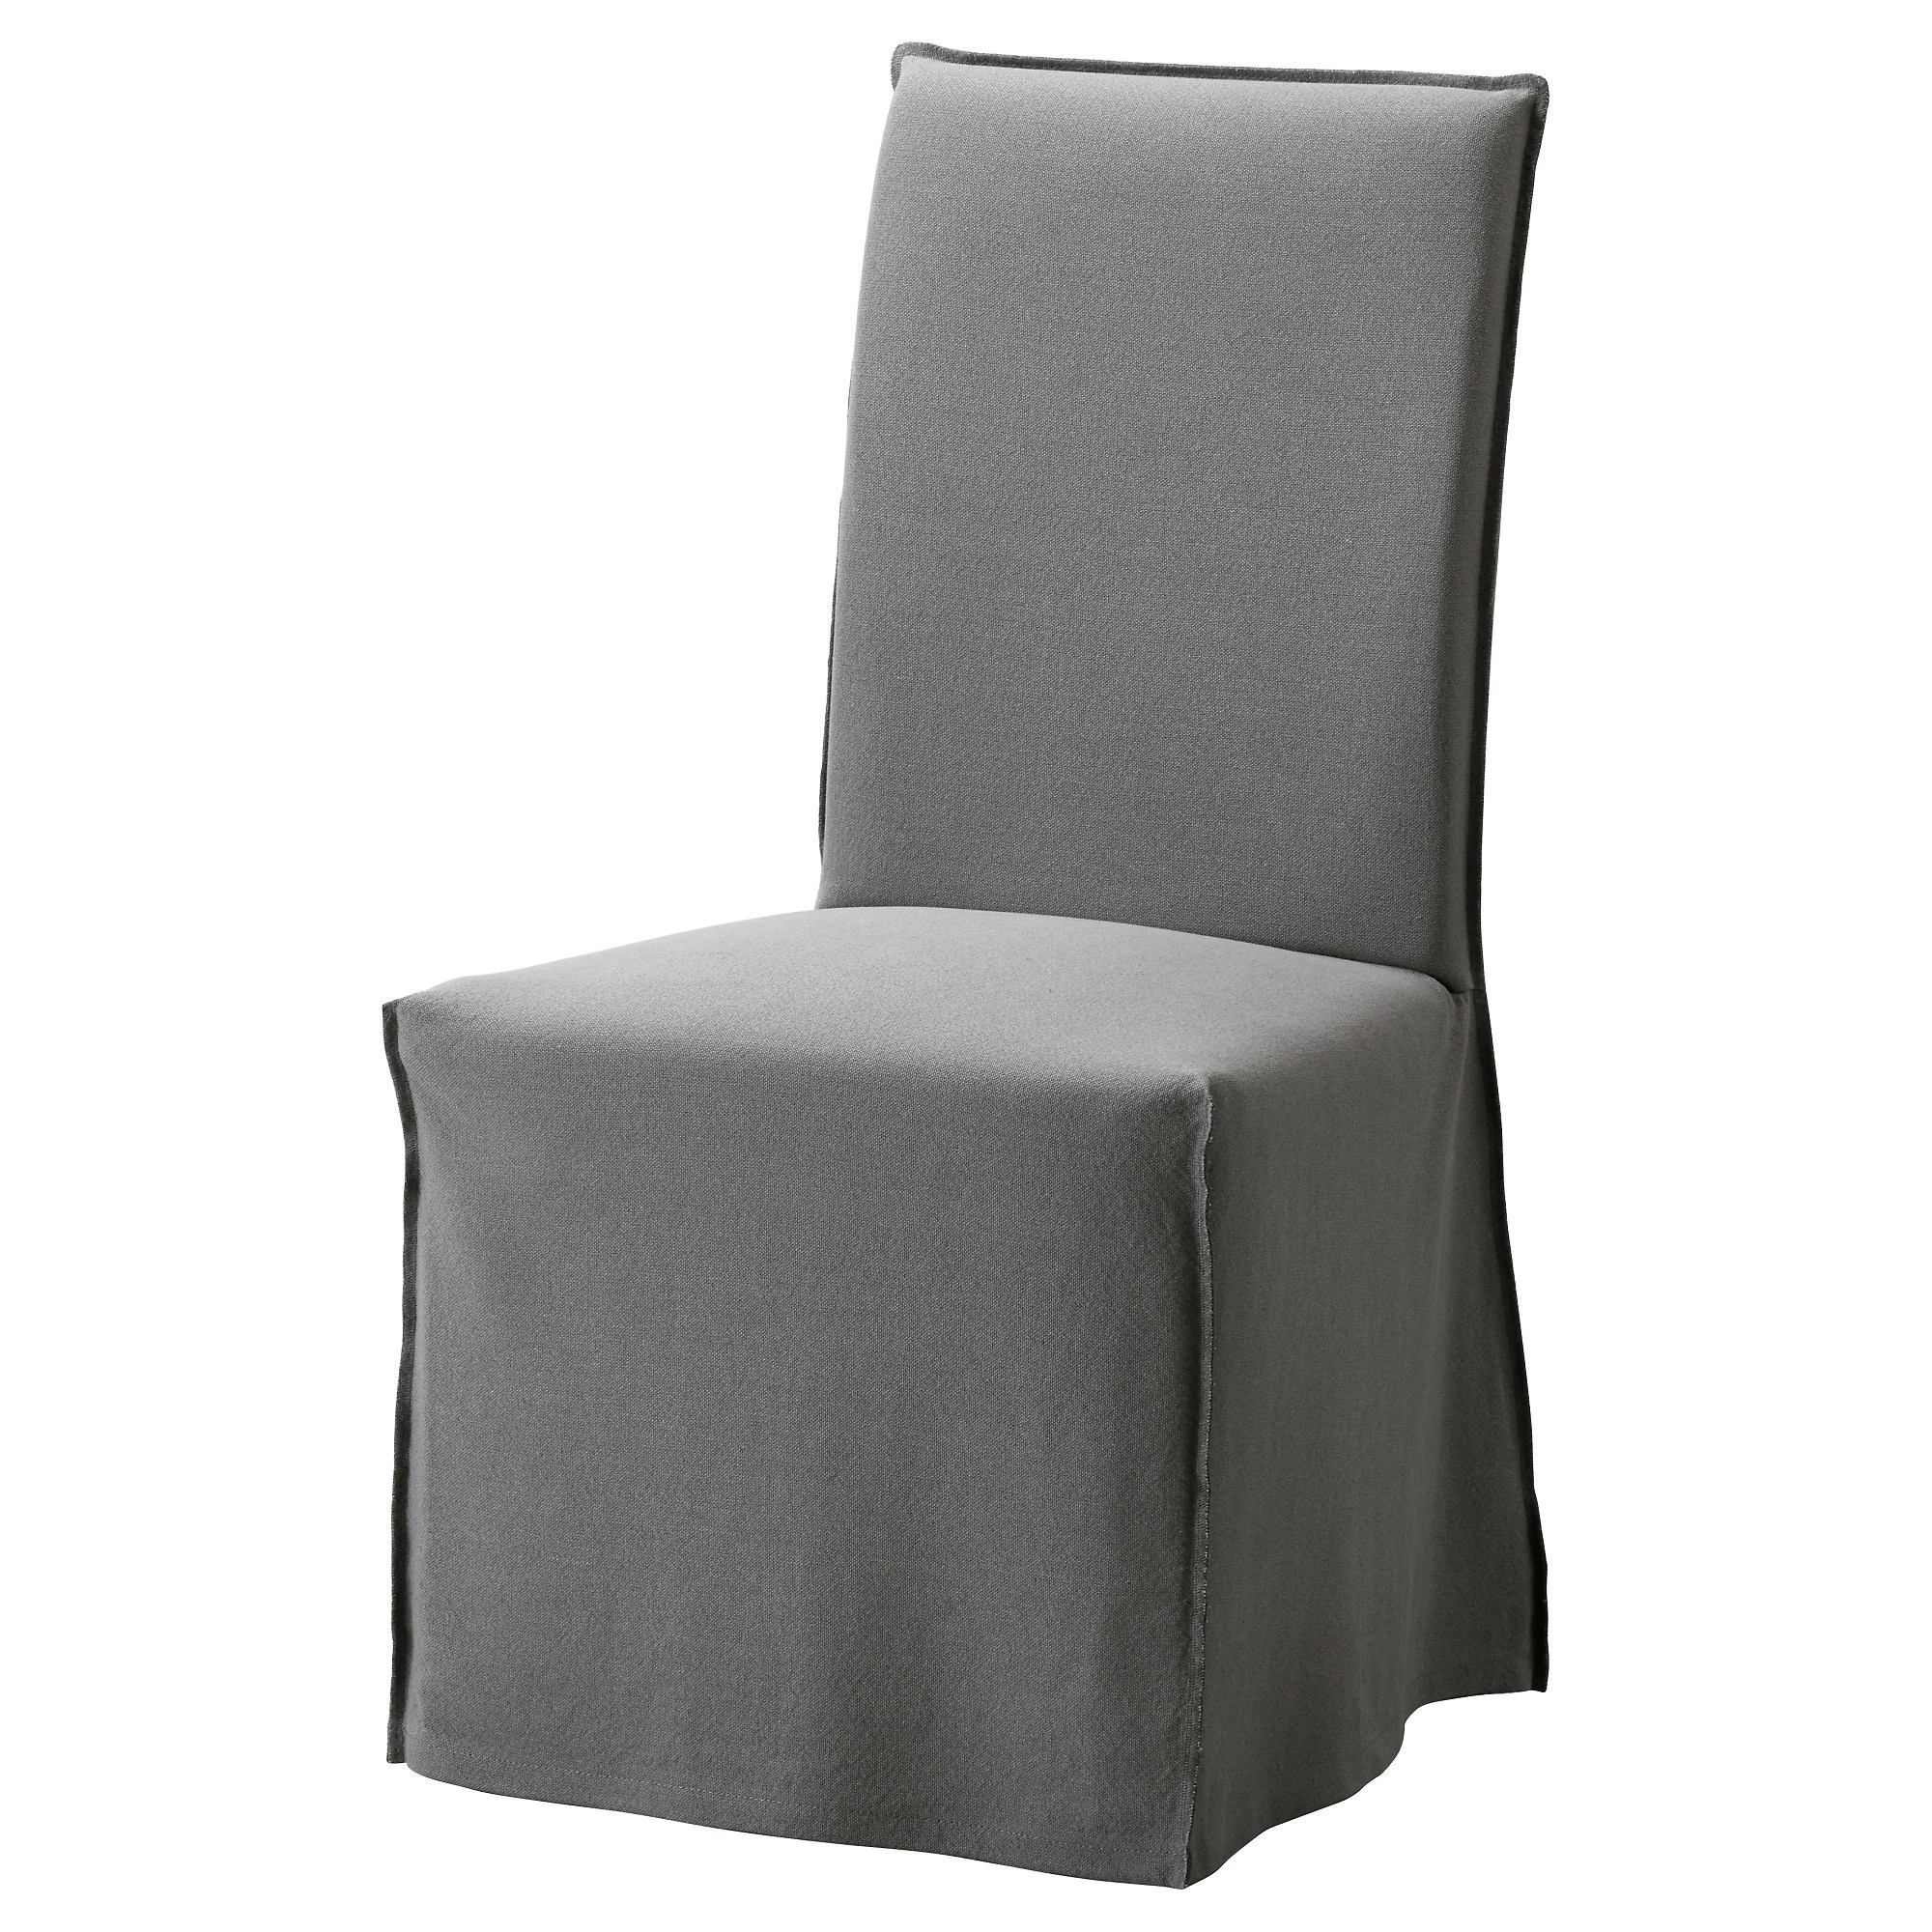 Chair Cover Henriksdal Chair Cover Long Risane Gray